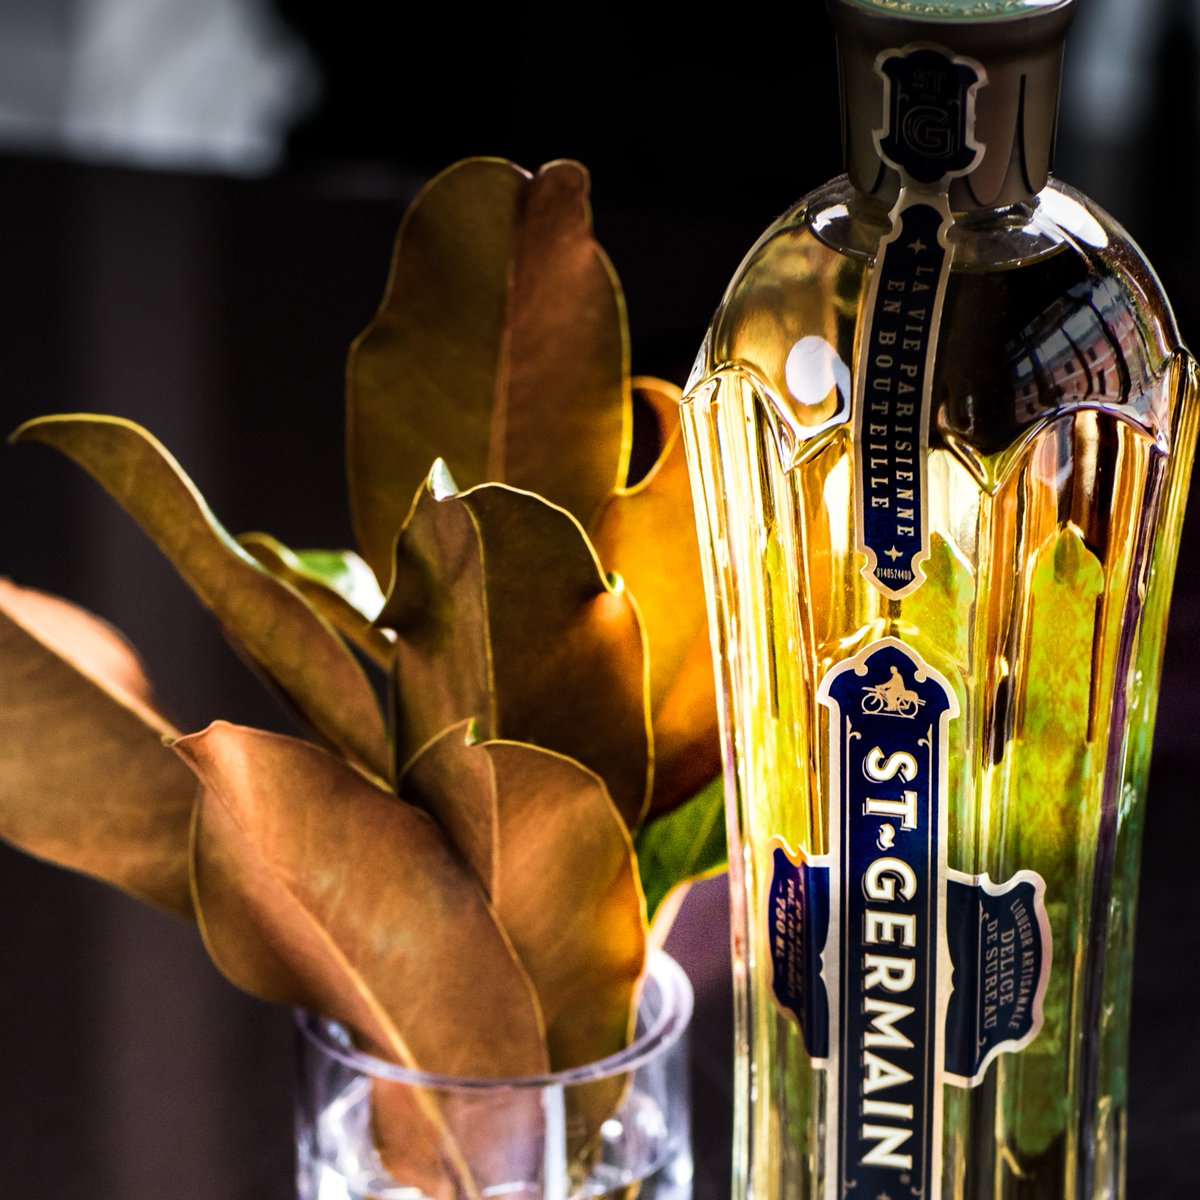 #Halloween, the perfect chance to dress up your cocktail. #StGermainDrinks https://t.co/kdcocCX5NJ